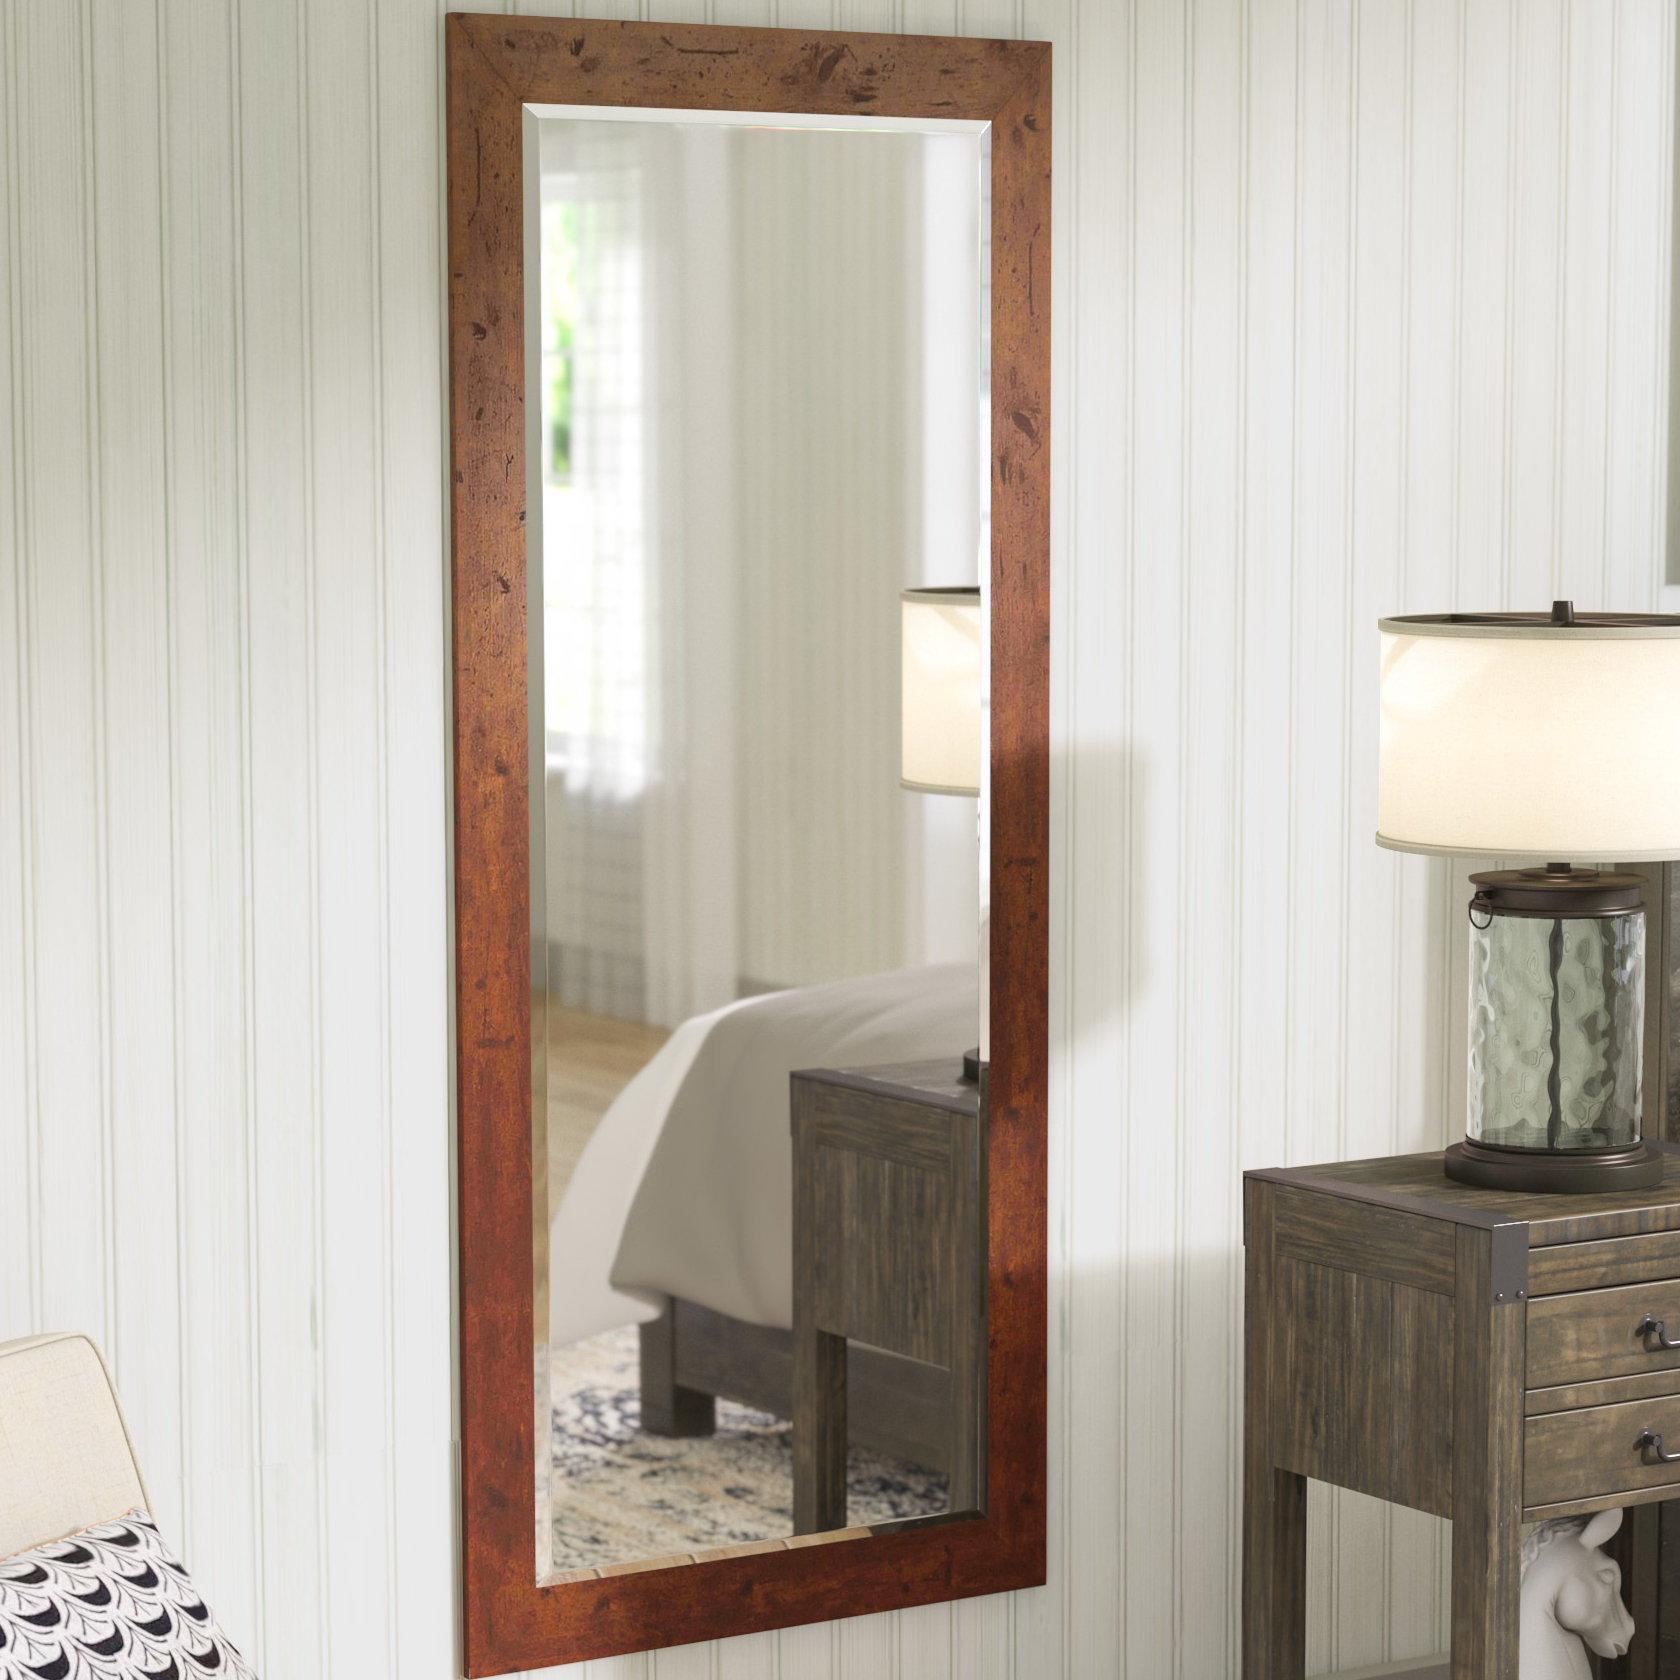 Farmhouse & Rustic Laurel Foundry Modern Farmhouse Wall Throughout Laurel Foundry Modern & Contemporary Accent Mirrors (View 8 of 20)